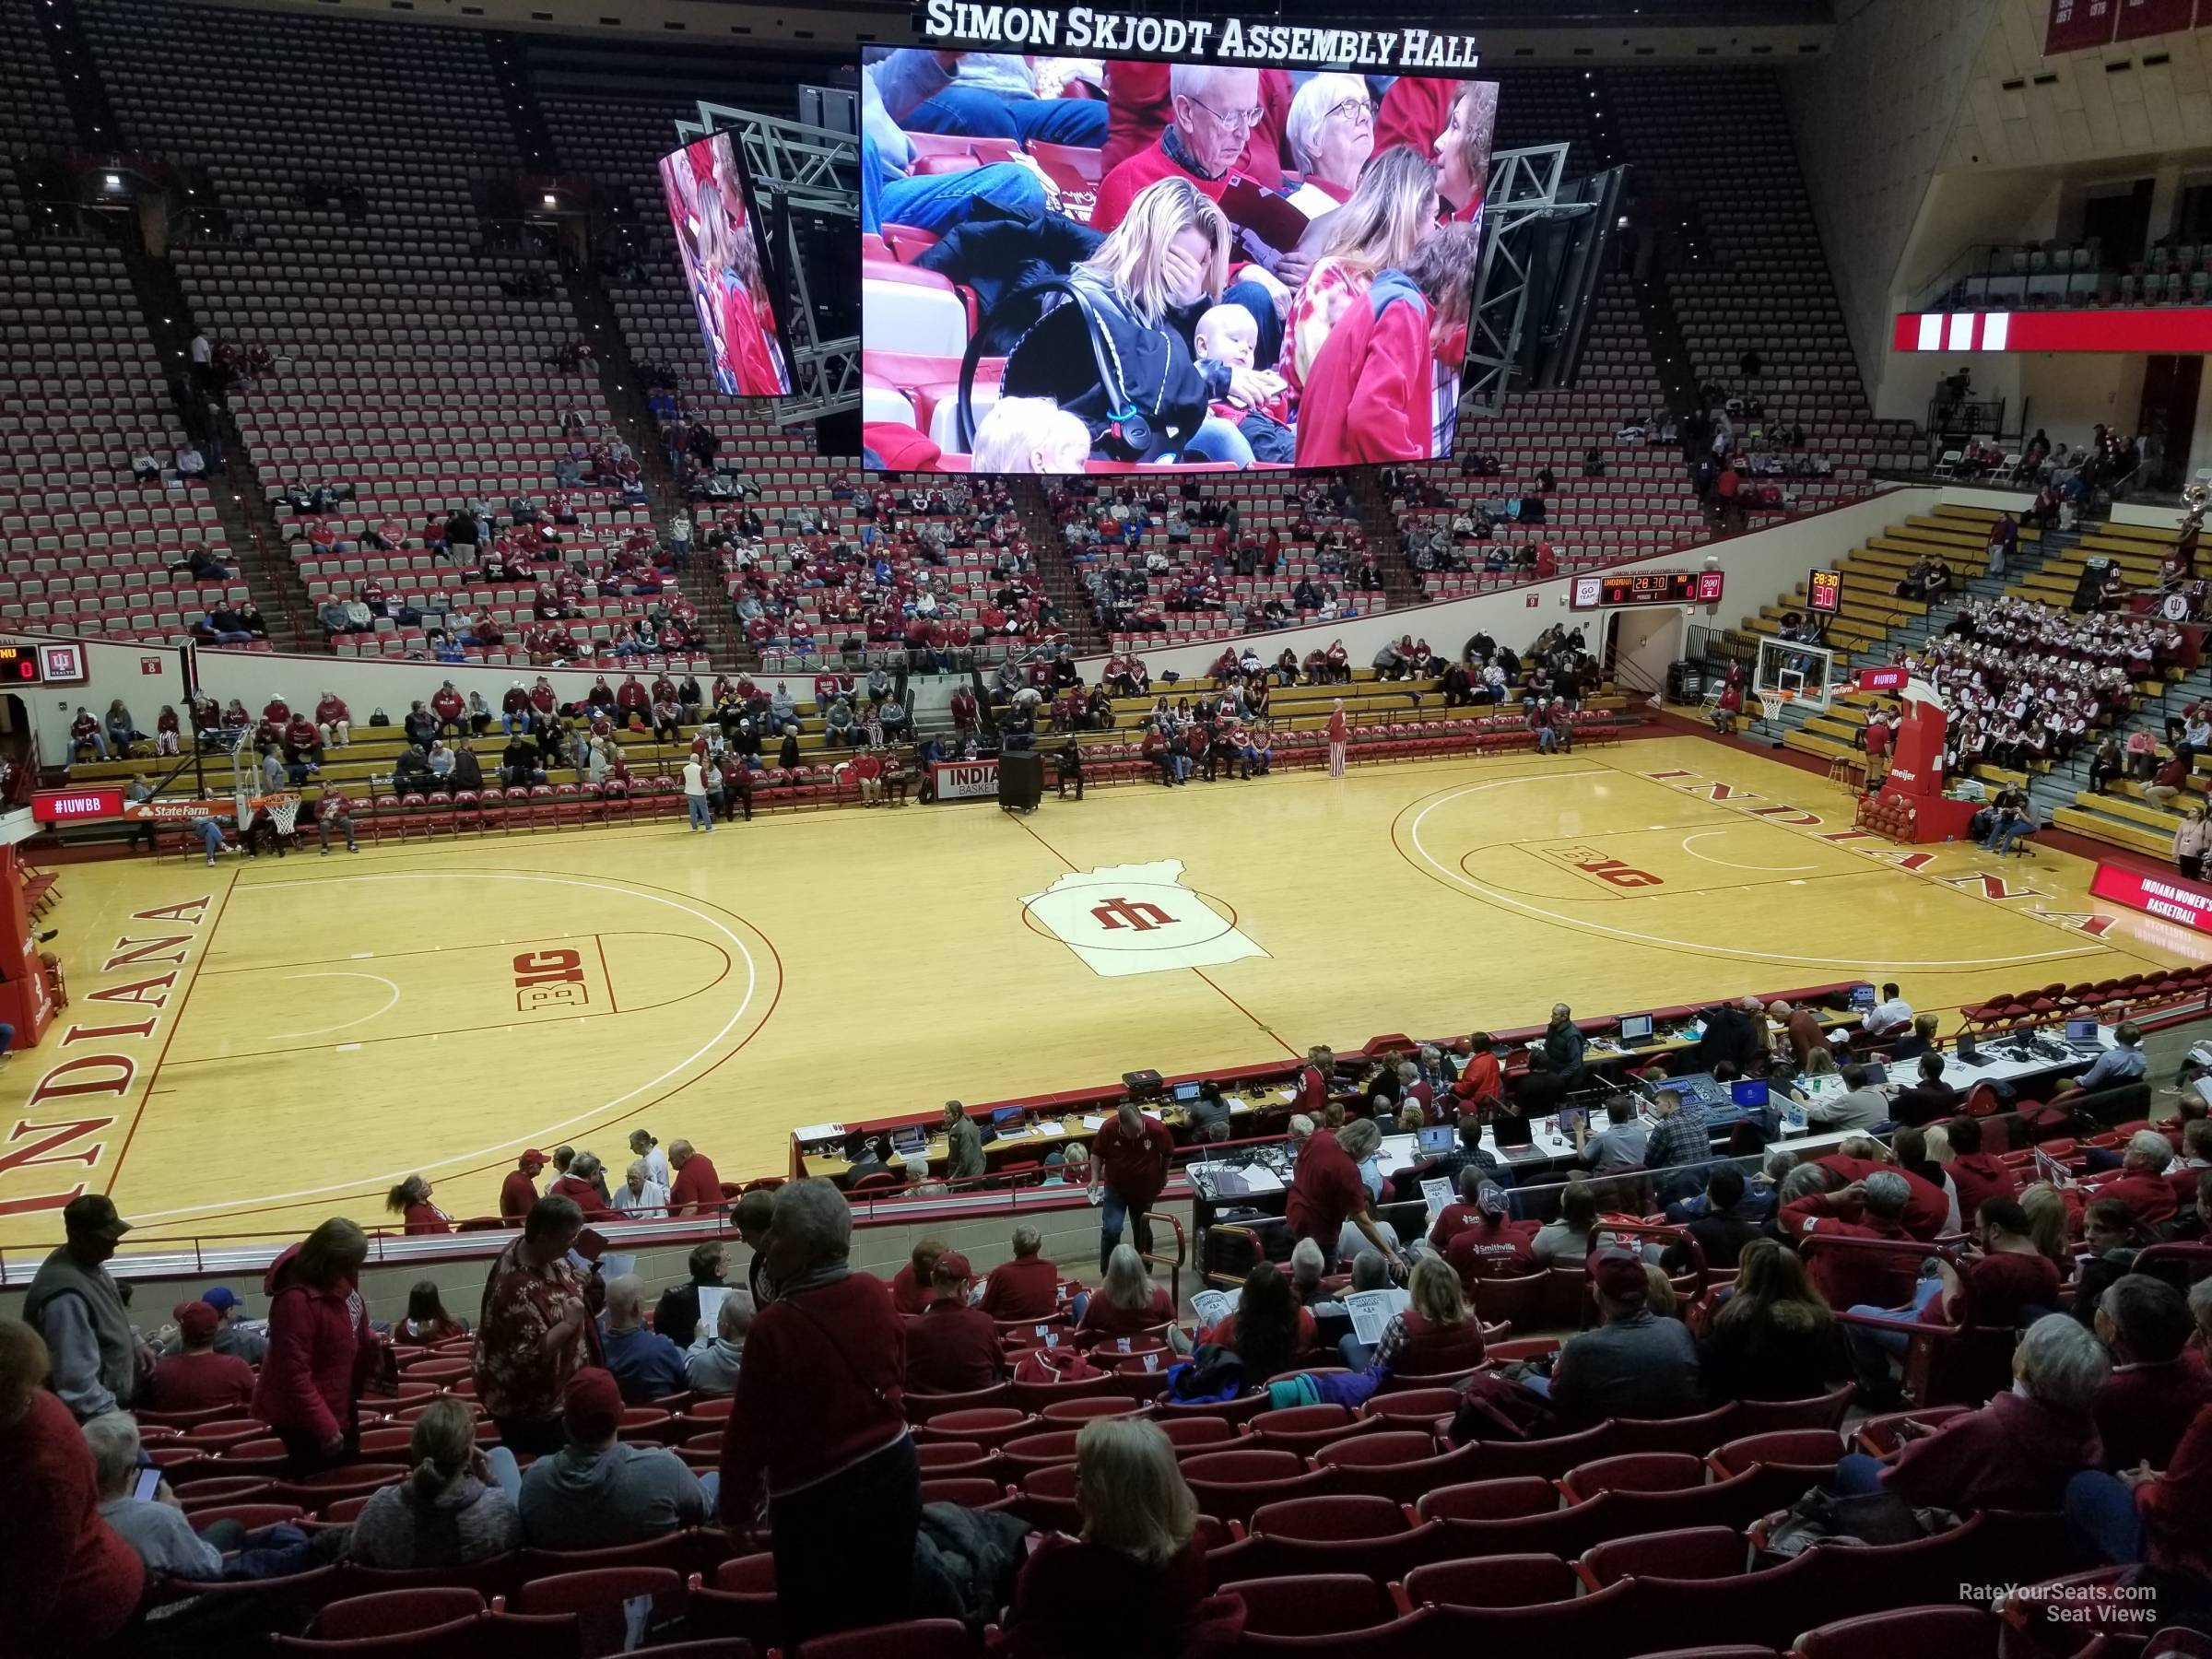 Seat View for Assembly Hall Section D, Row 15